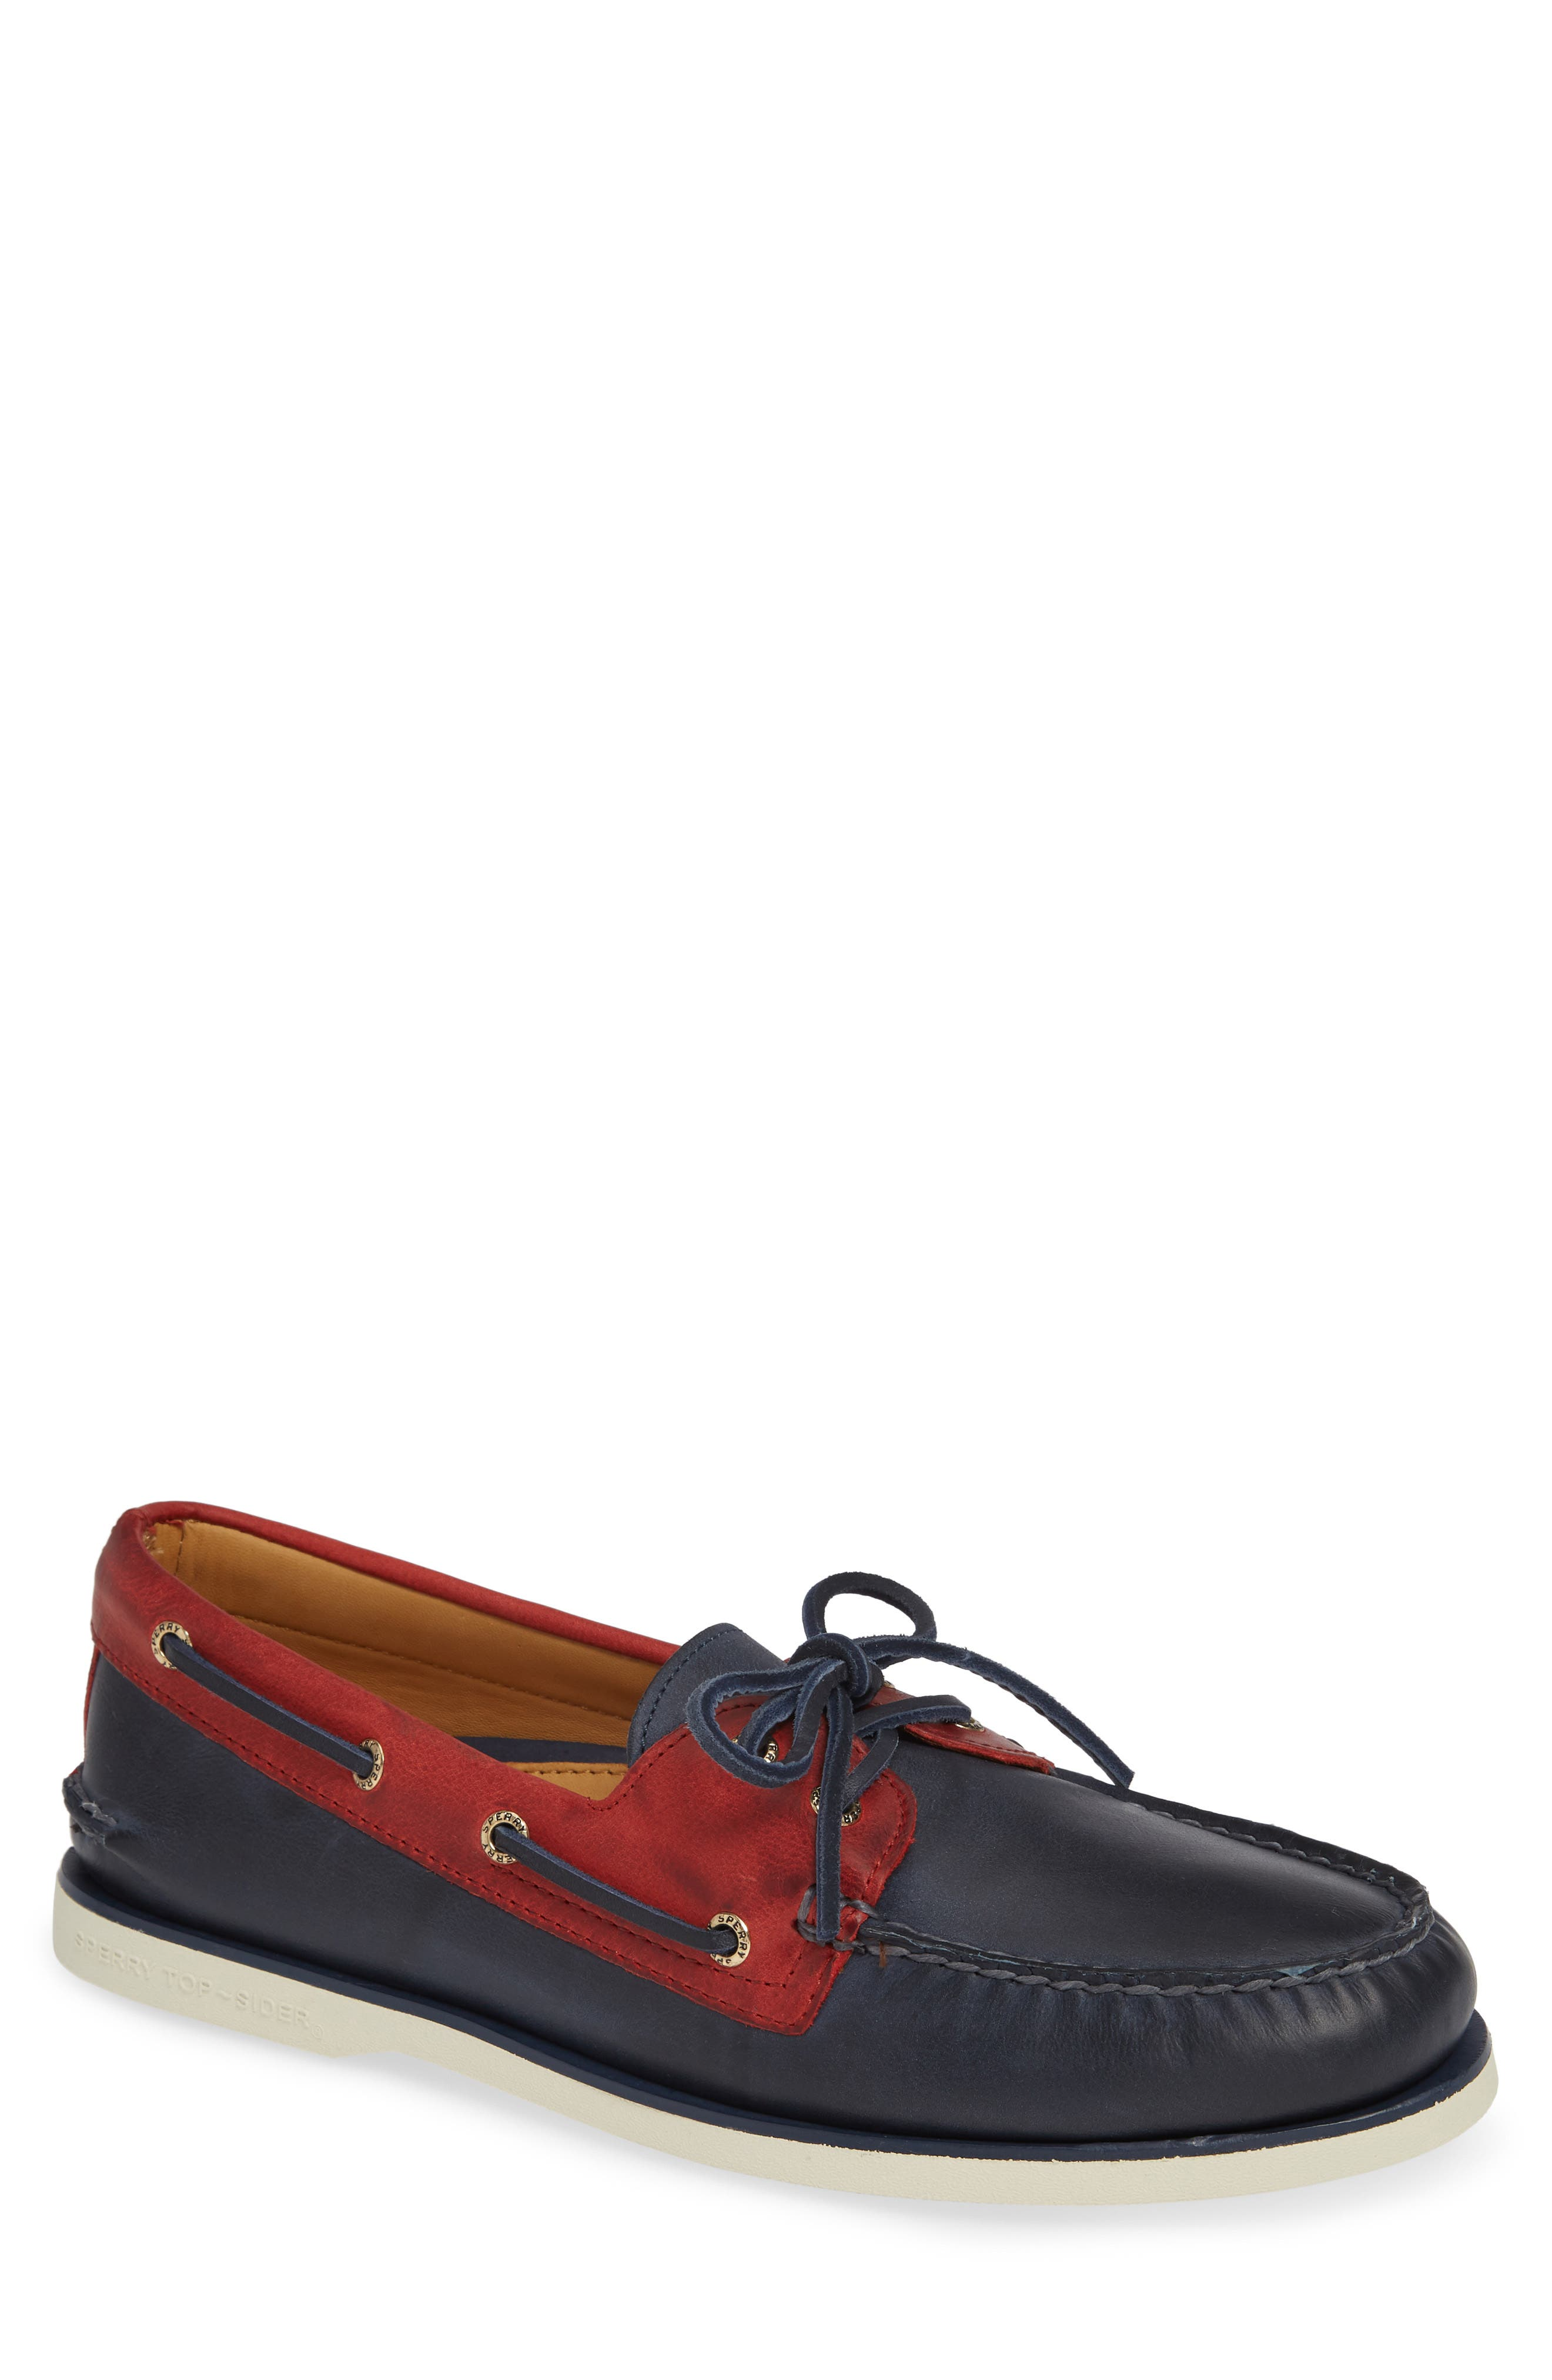 Gold Cup AO Boat Shoe,                         Main,                         color, NAVY/ RED